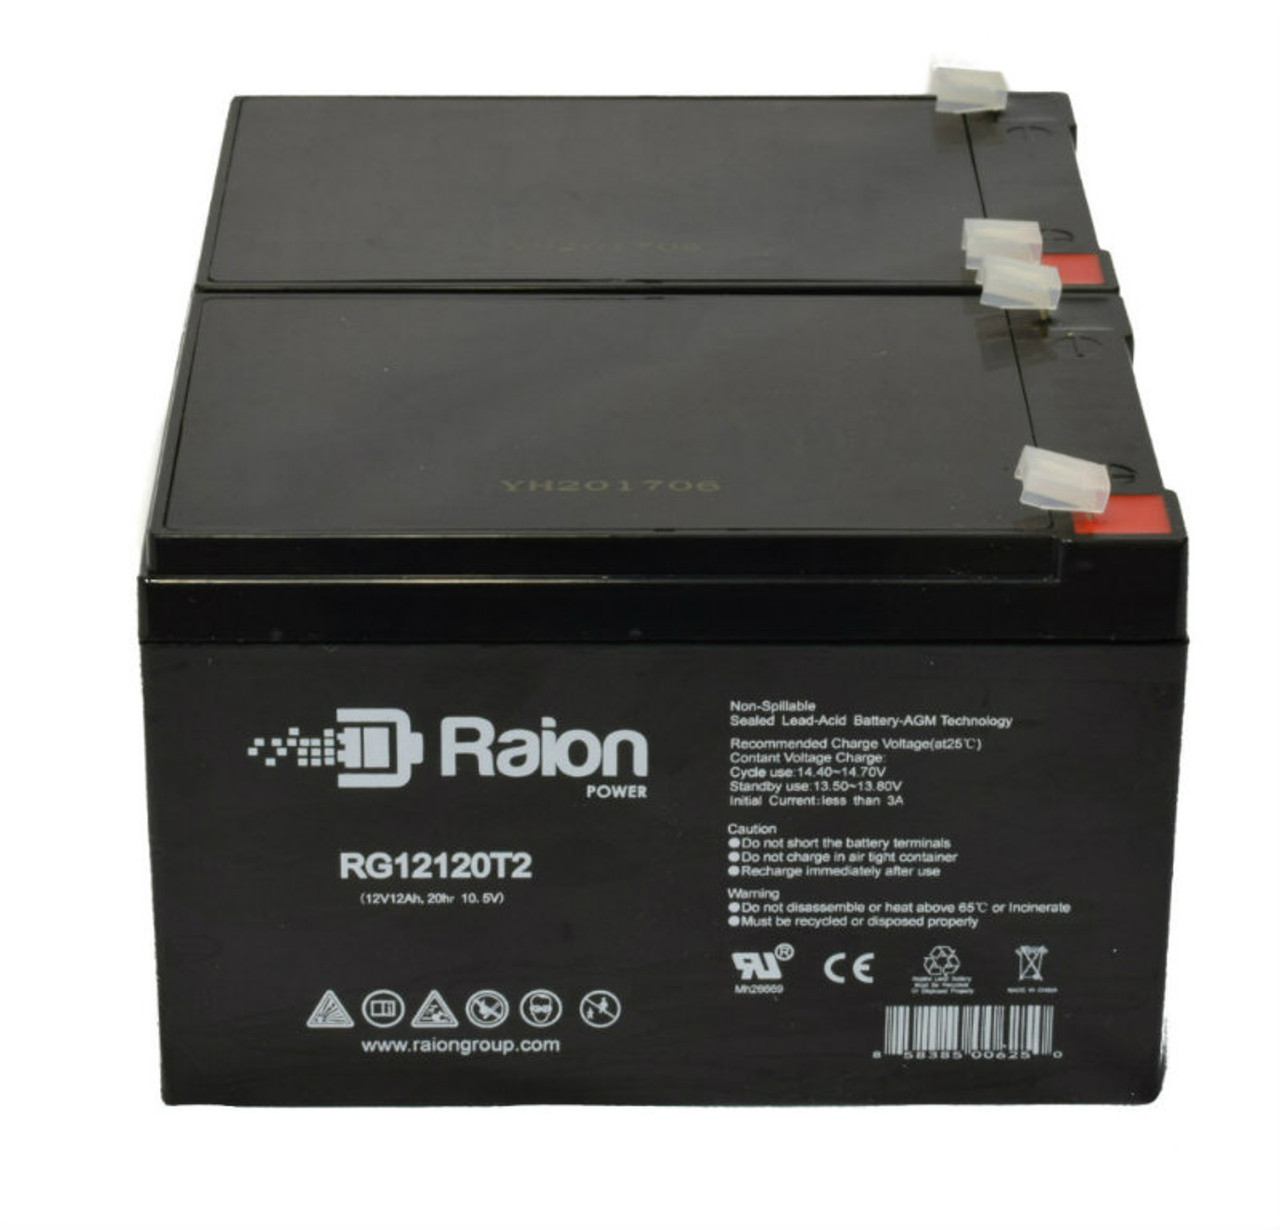 Raion Power RG12120T2 Replacement Battery Set for CTM HS-235 Mobility Scooter - 2 Pack